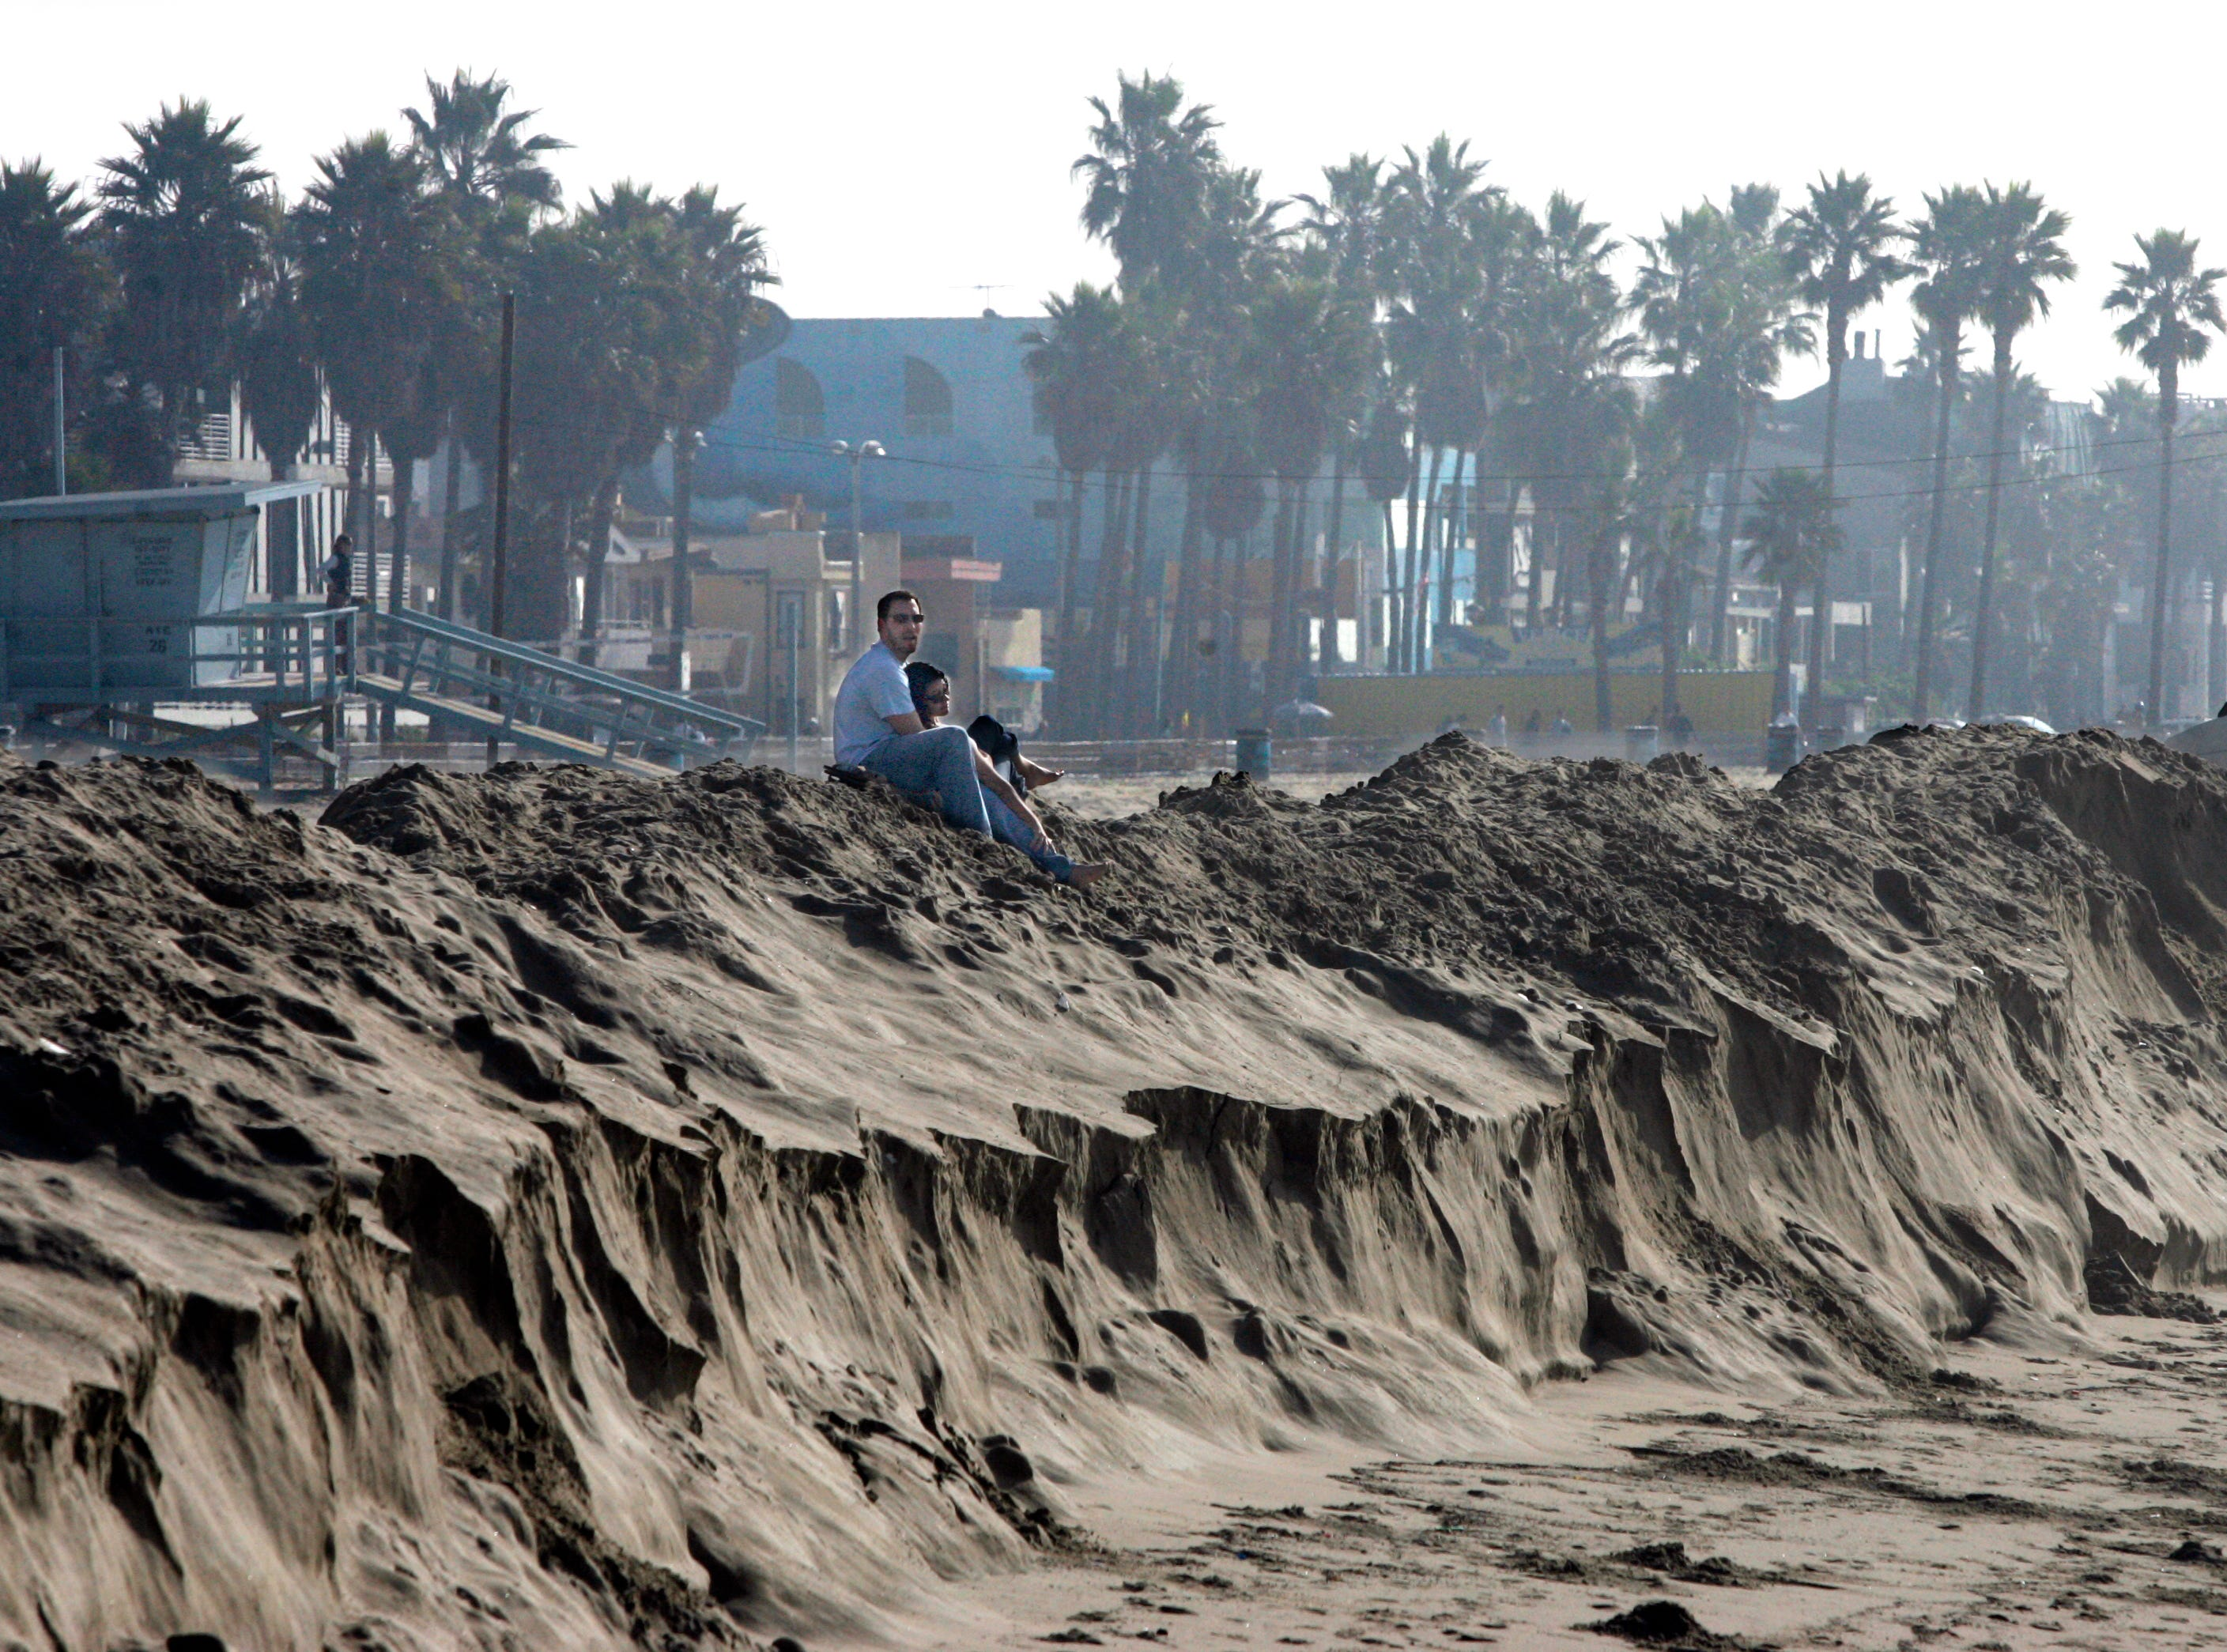 Zack Freedman, of Venice, Calif., hangs out with his girlfriend, Heather Valdez, who is visiting him from Boston, on top of an erected berm at Venice Beach, watching the surf Thursday, Dec. 29, 2005, in Los Angeles. The berm was built to protect waterfront homes and business from flooding should the surf get too big.